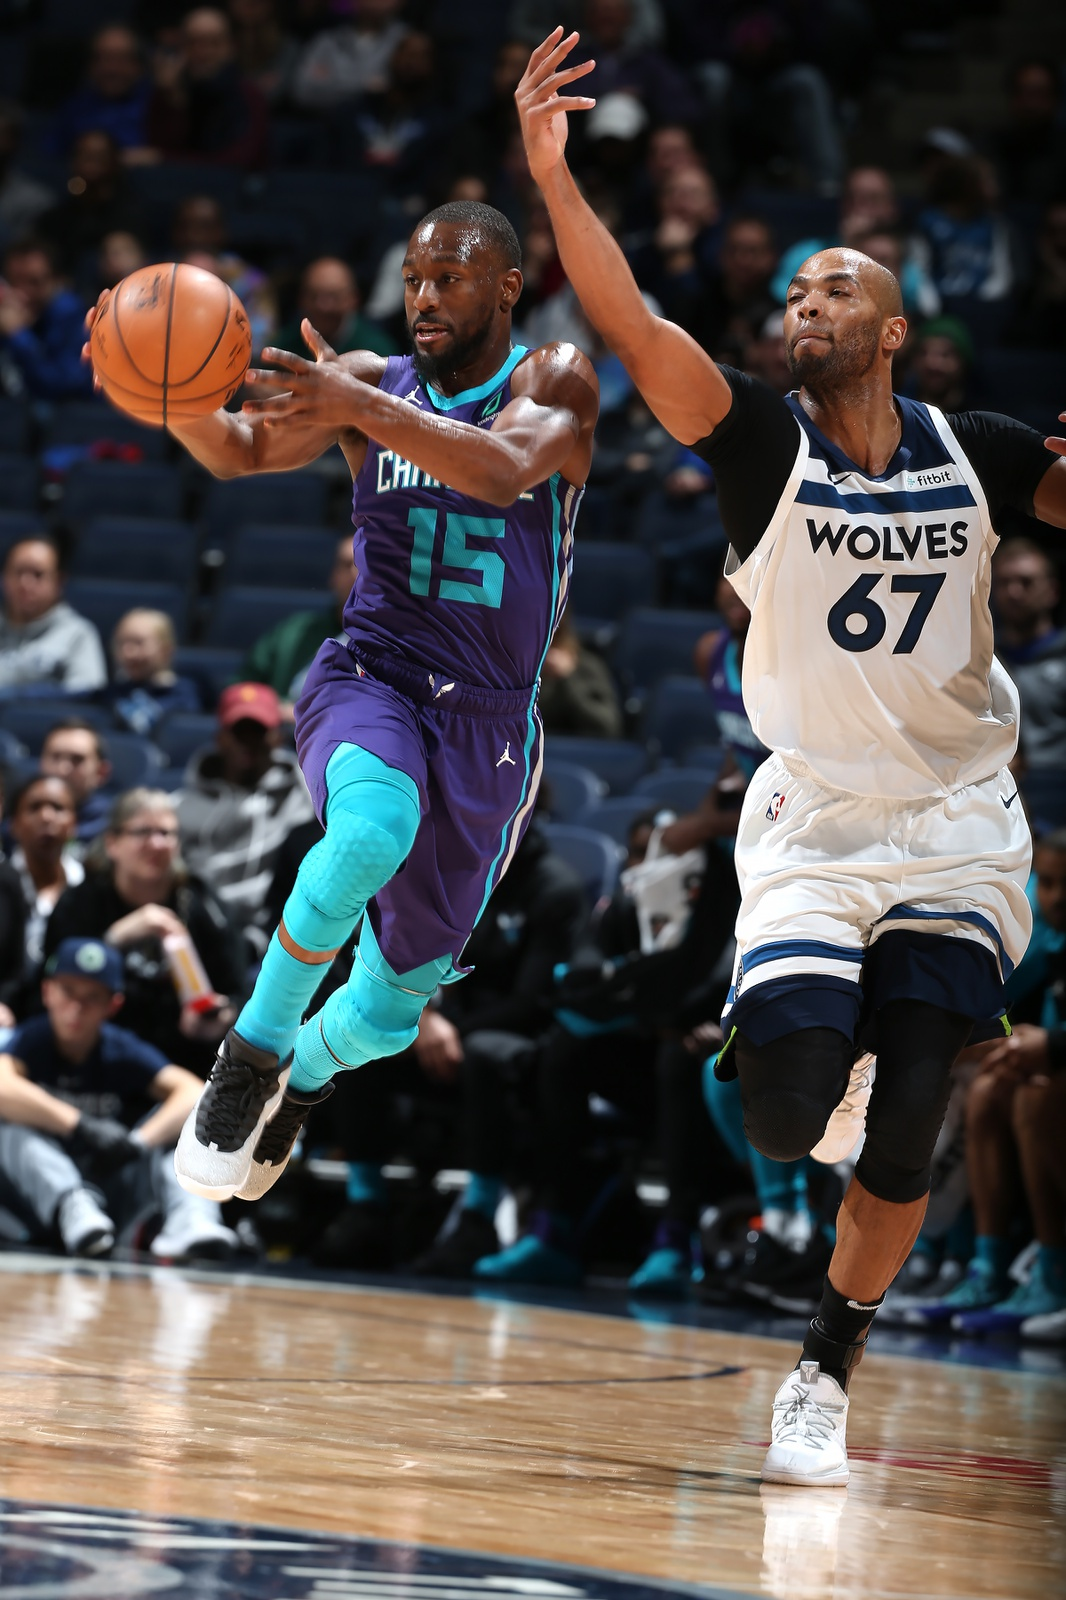 Kemba Walker #15 of the Charlotte Hornets grabs the ball against the Minnesota Timberwolves on December 5, 2018 at Target Center in Minneapolis, Minnesota.